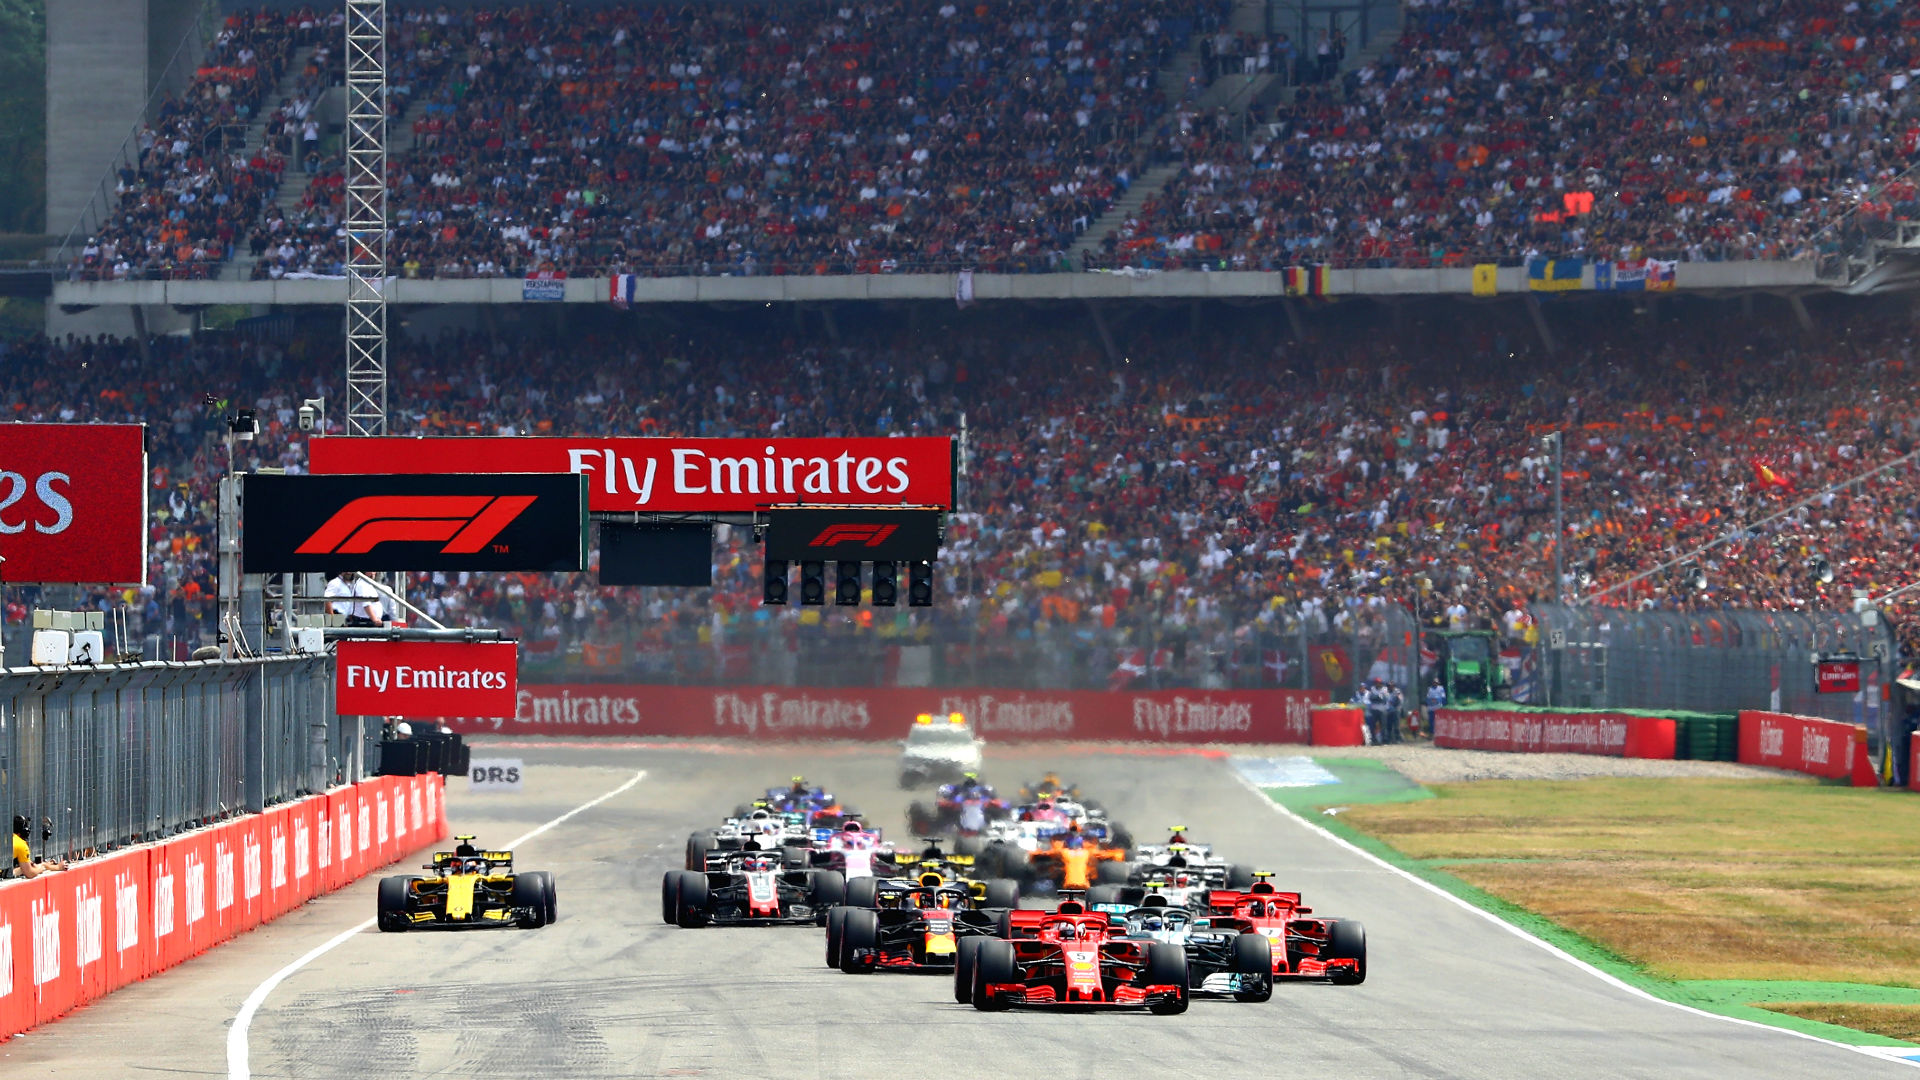 F1 German Grand Prix: Start time, TV channel, how to stream 2019 race